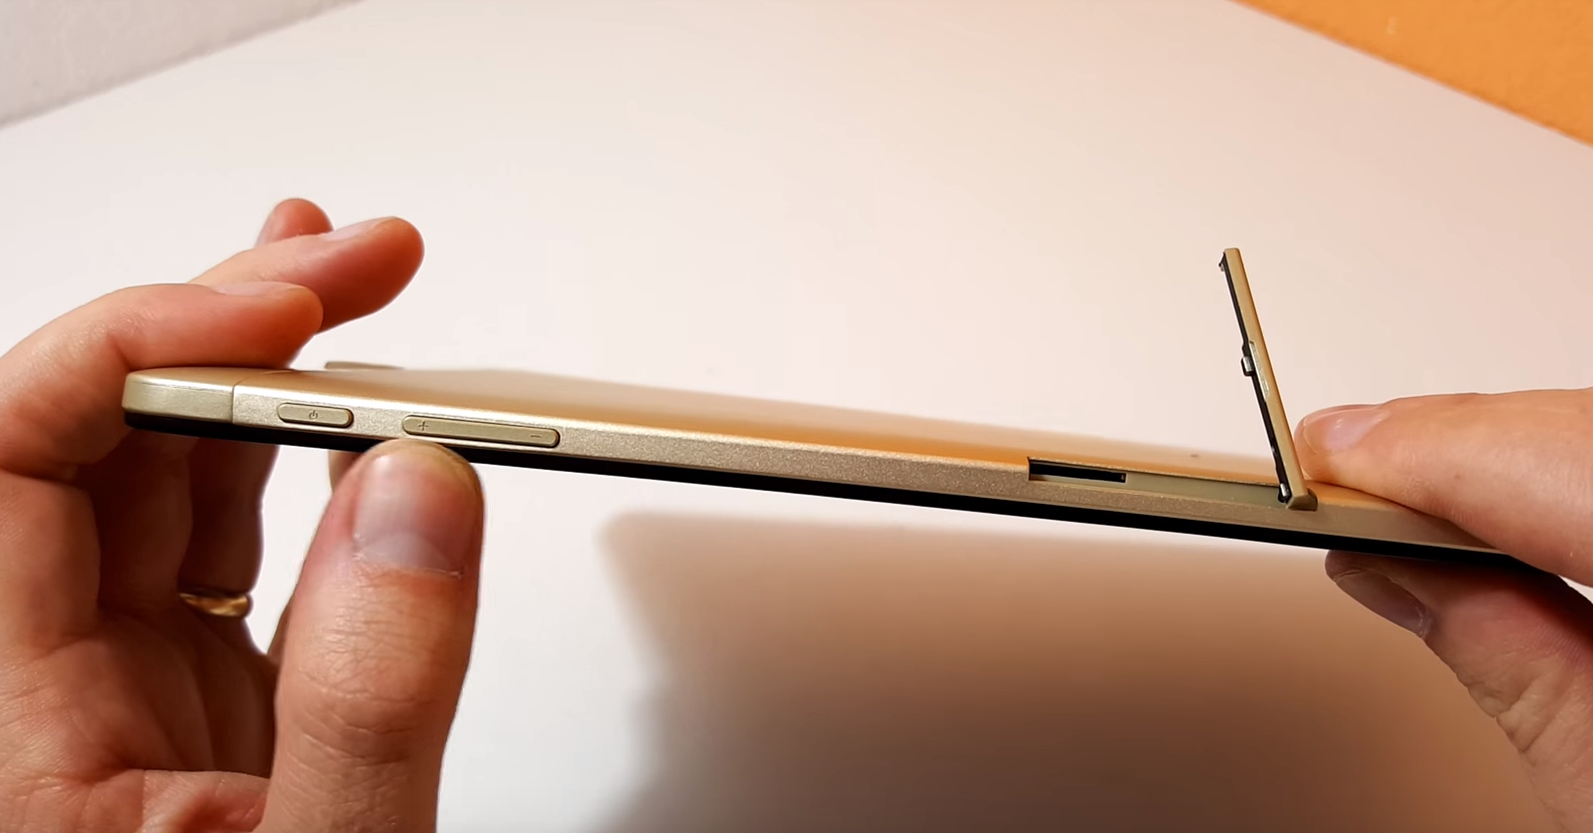 Onda V919 Air, held in hands, showing the right side of the tablet, white table in the background.